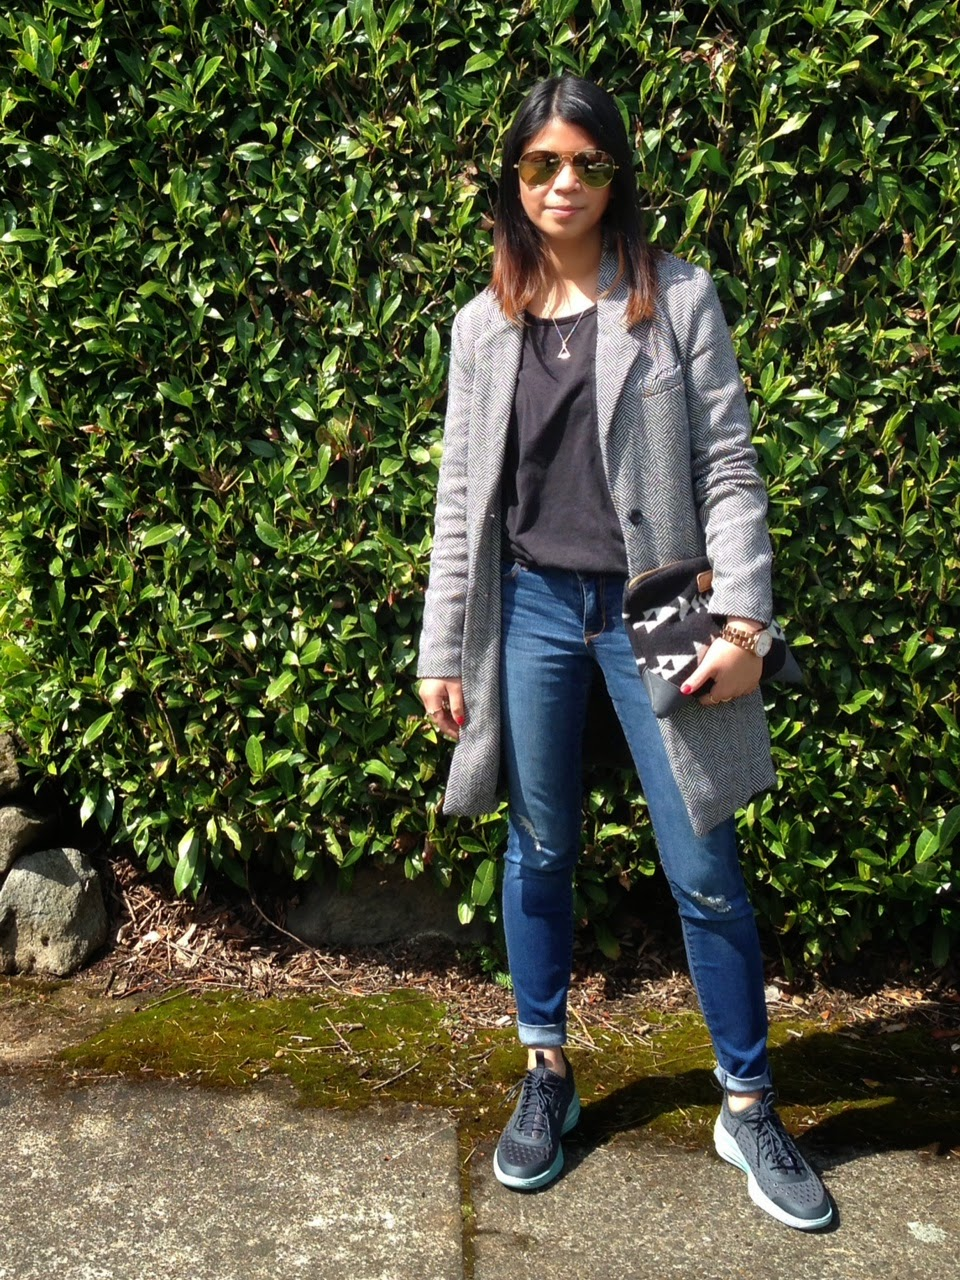 ootd, portland bloggers, fashion post, what i wore, mod deals, old navy rockstar jeans, zero uv glasses, marc by marc jacobs watch, nike lunarlite